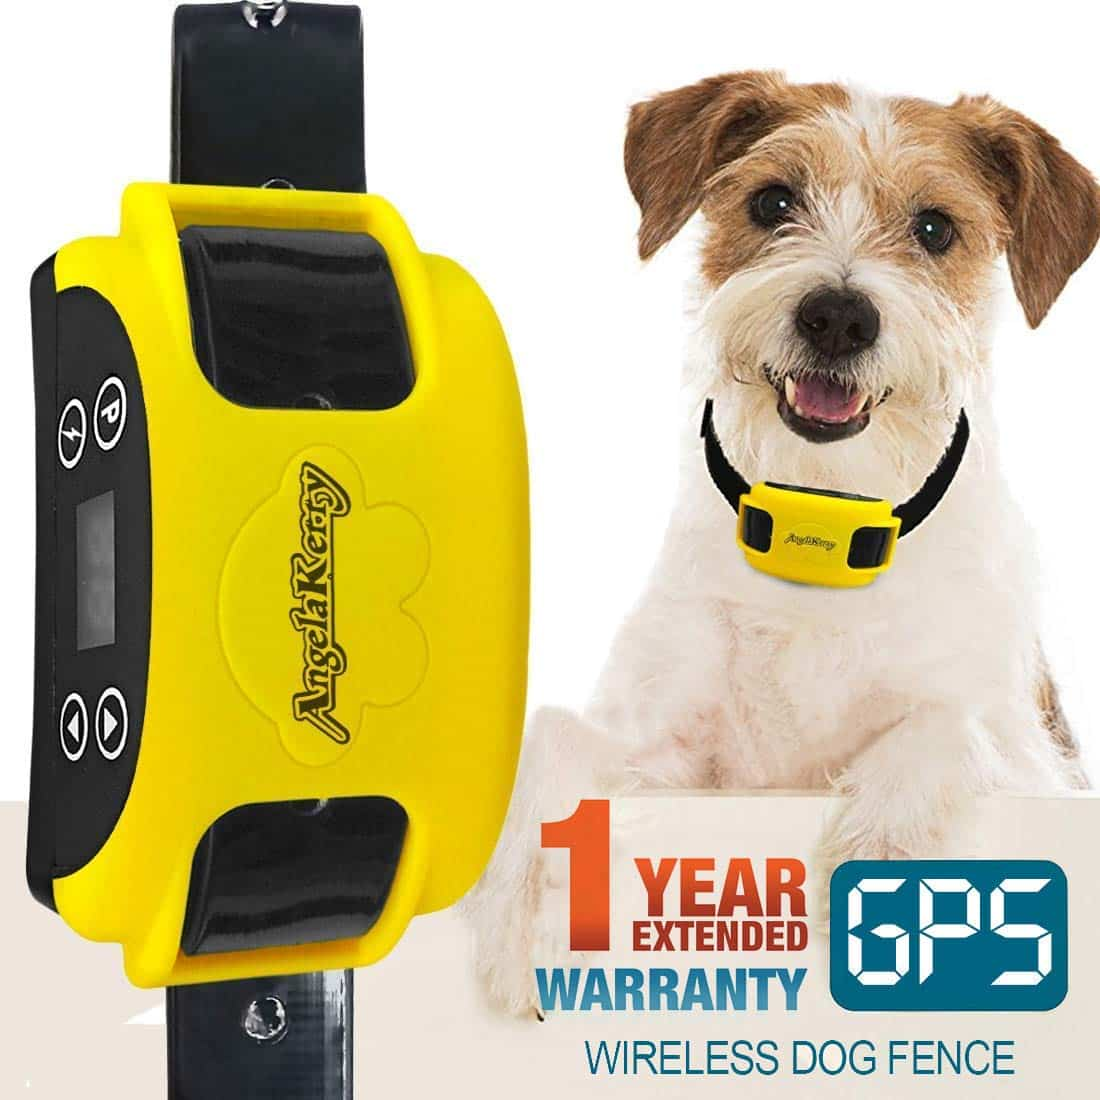 AngelaKerry Wireless Dog Fence System